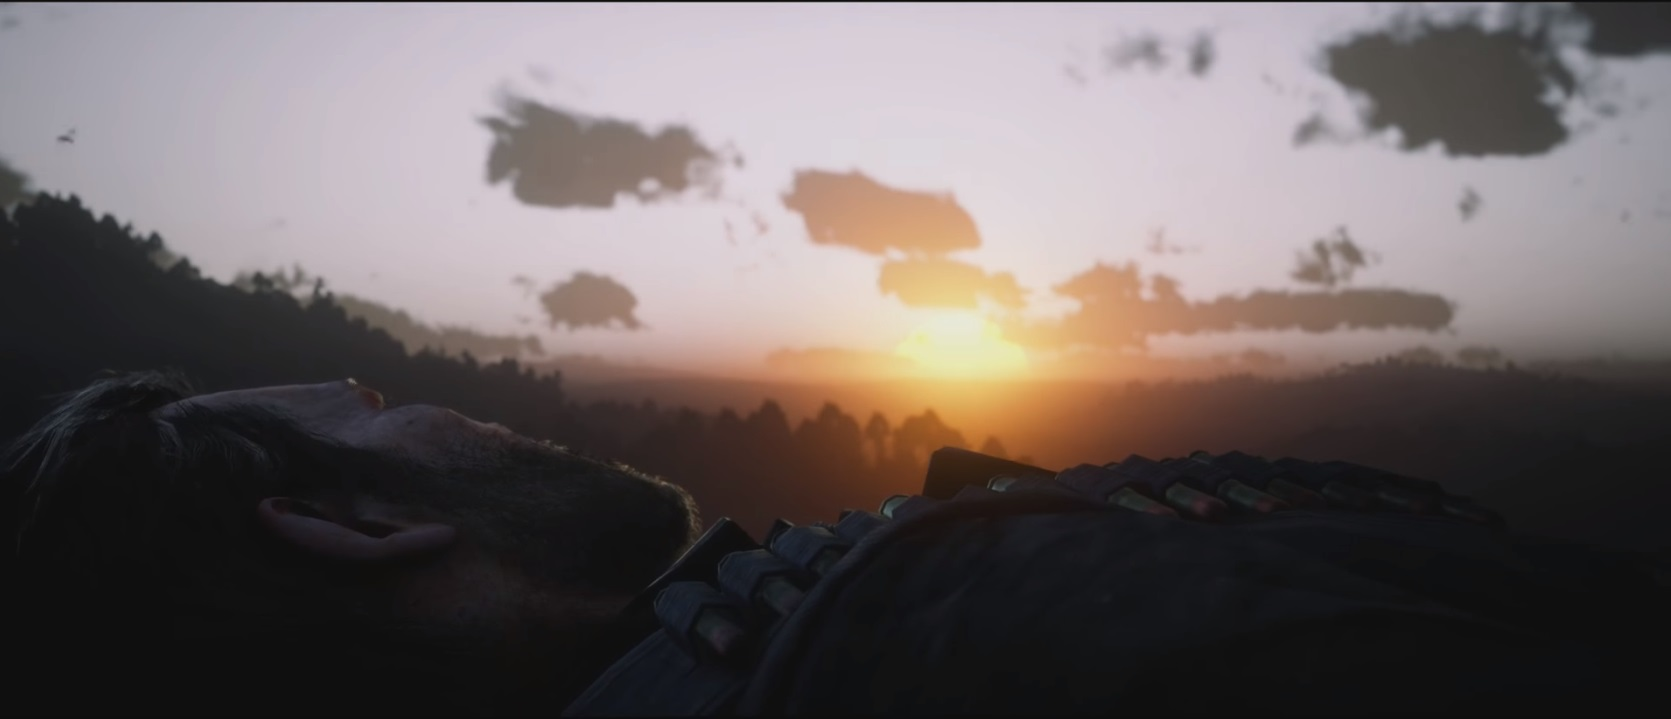 Red Dead Redemption 2 Spoilers FAQ: Endings, Deaths and More | USgamer